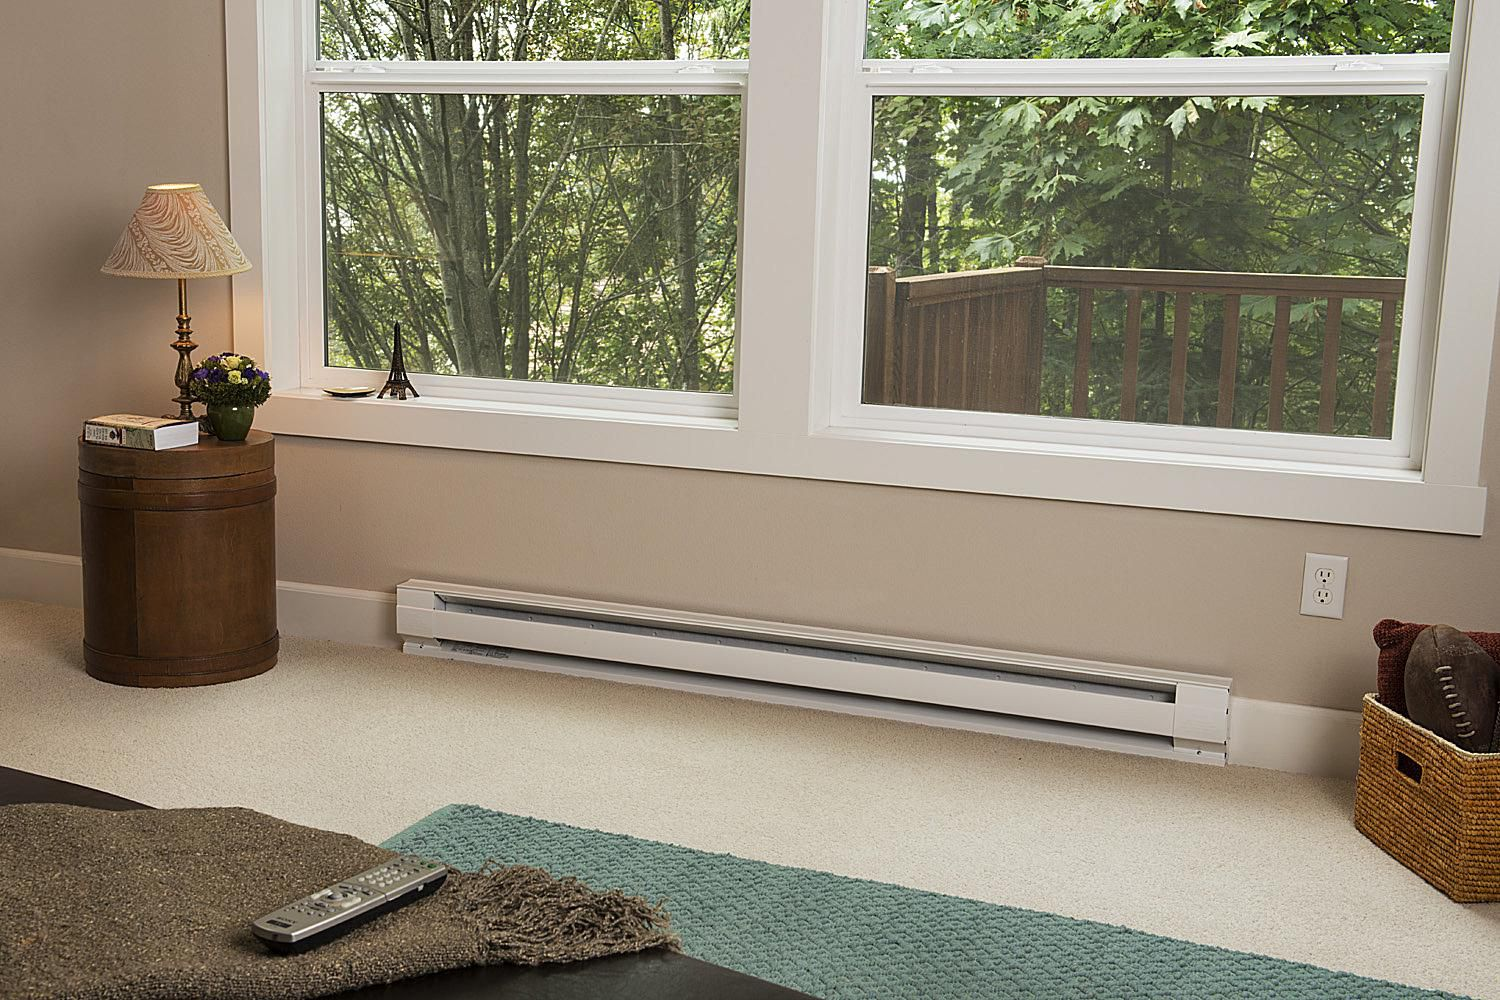 Wiring For Baseboard Heater 240v